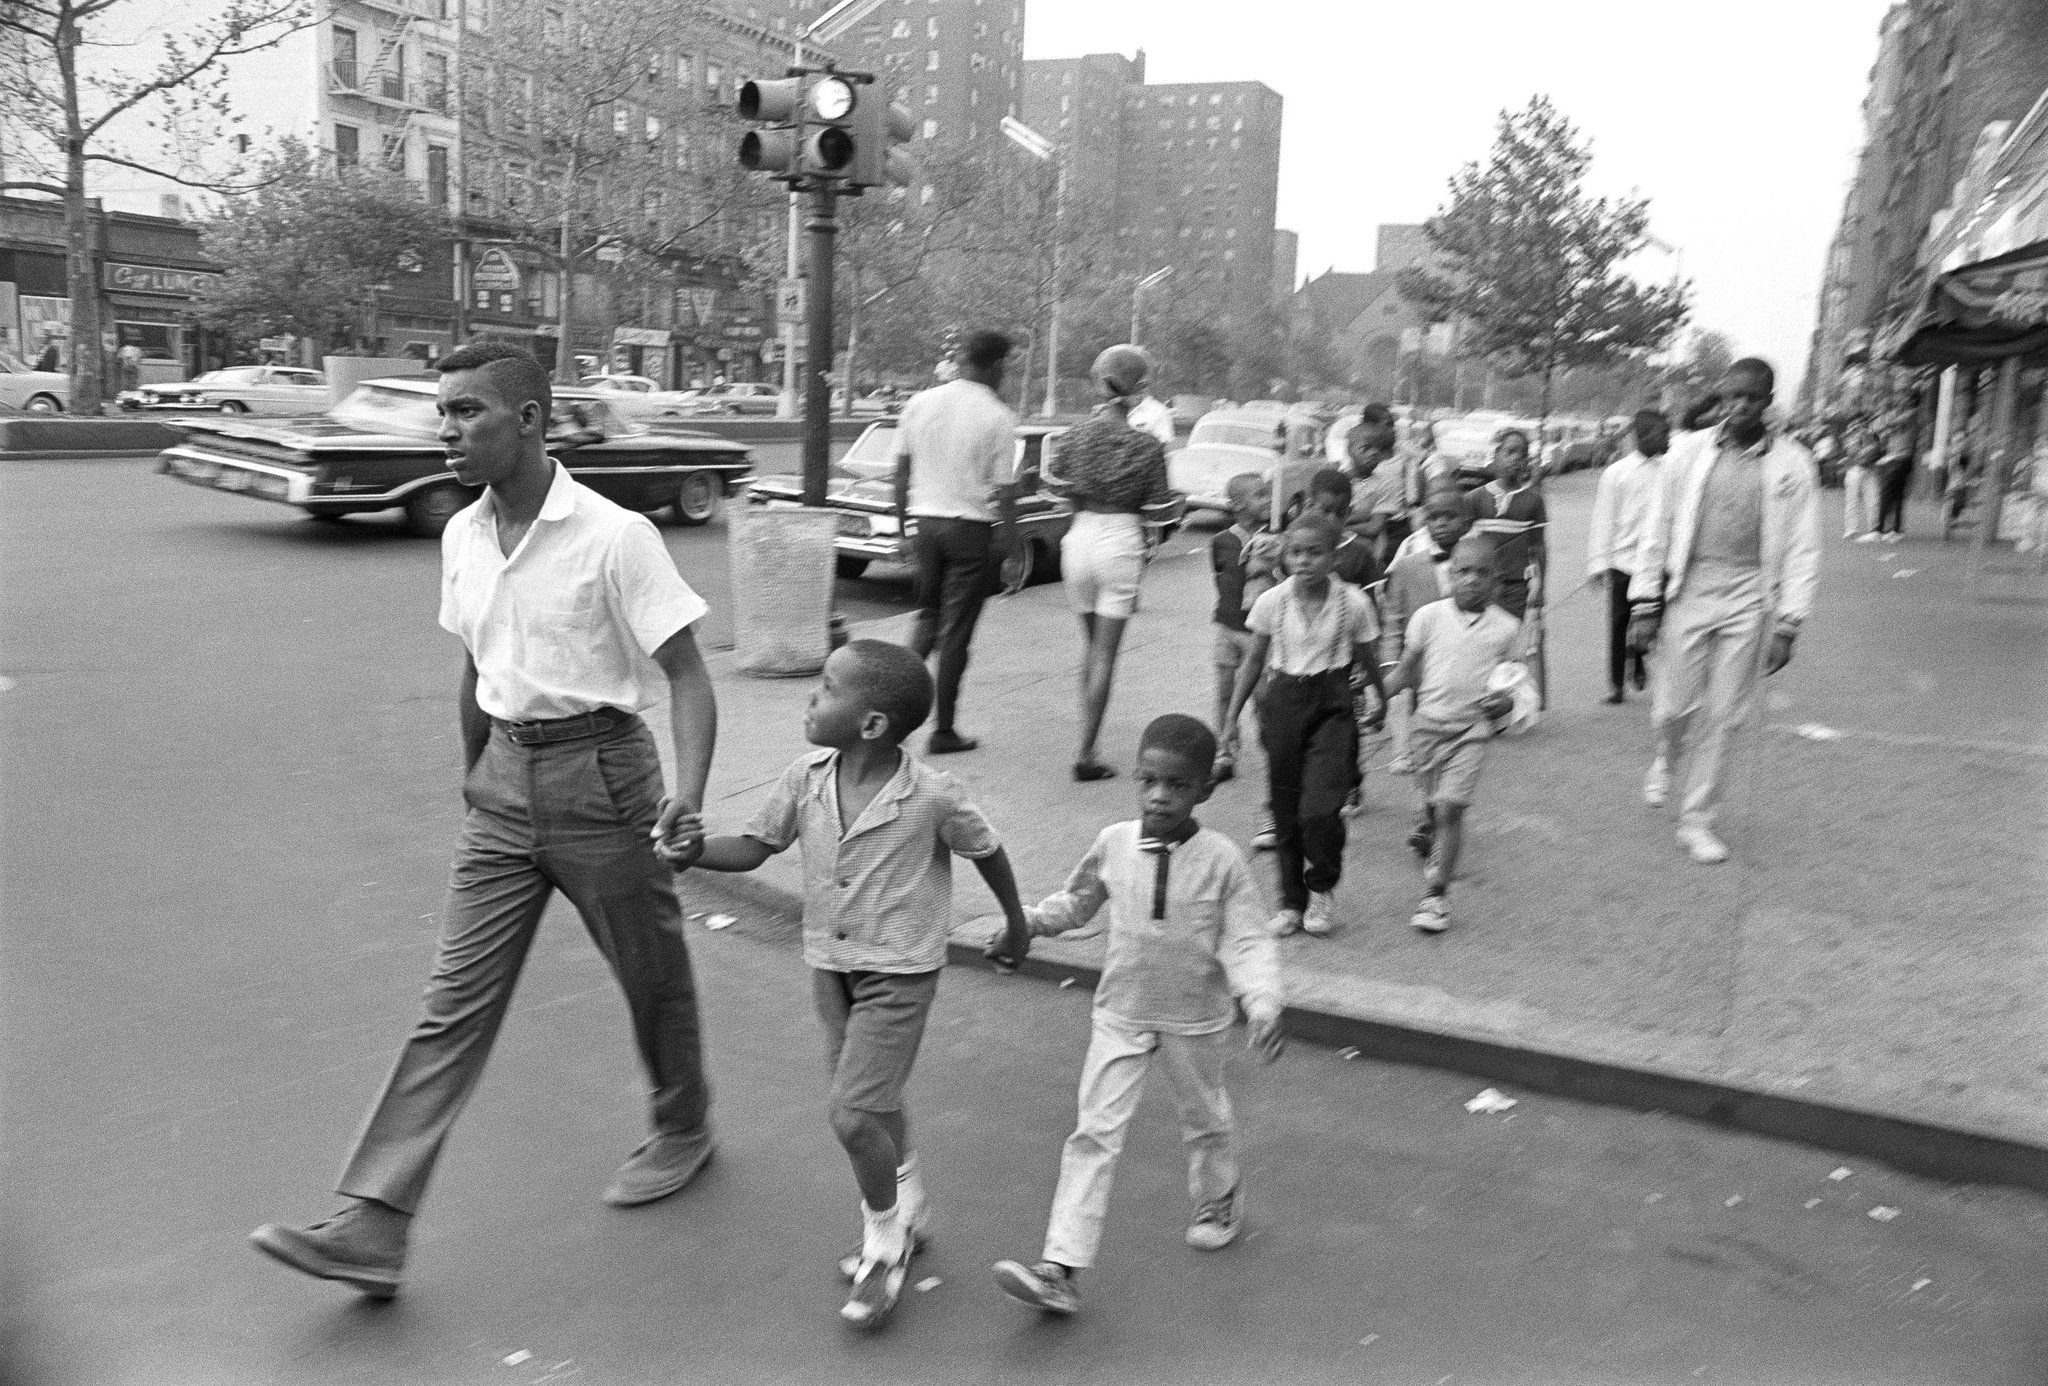 From Black-and-White Negatives, a Positive View of Harlem